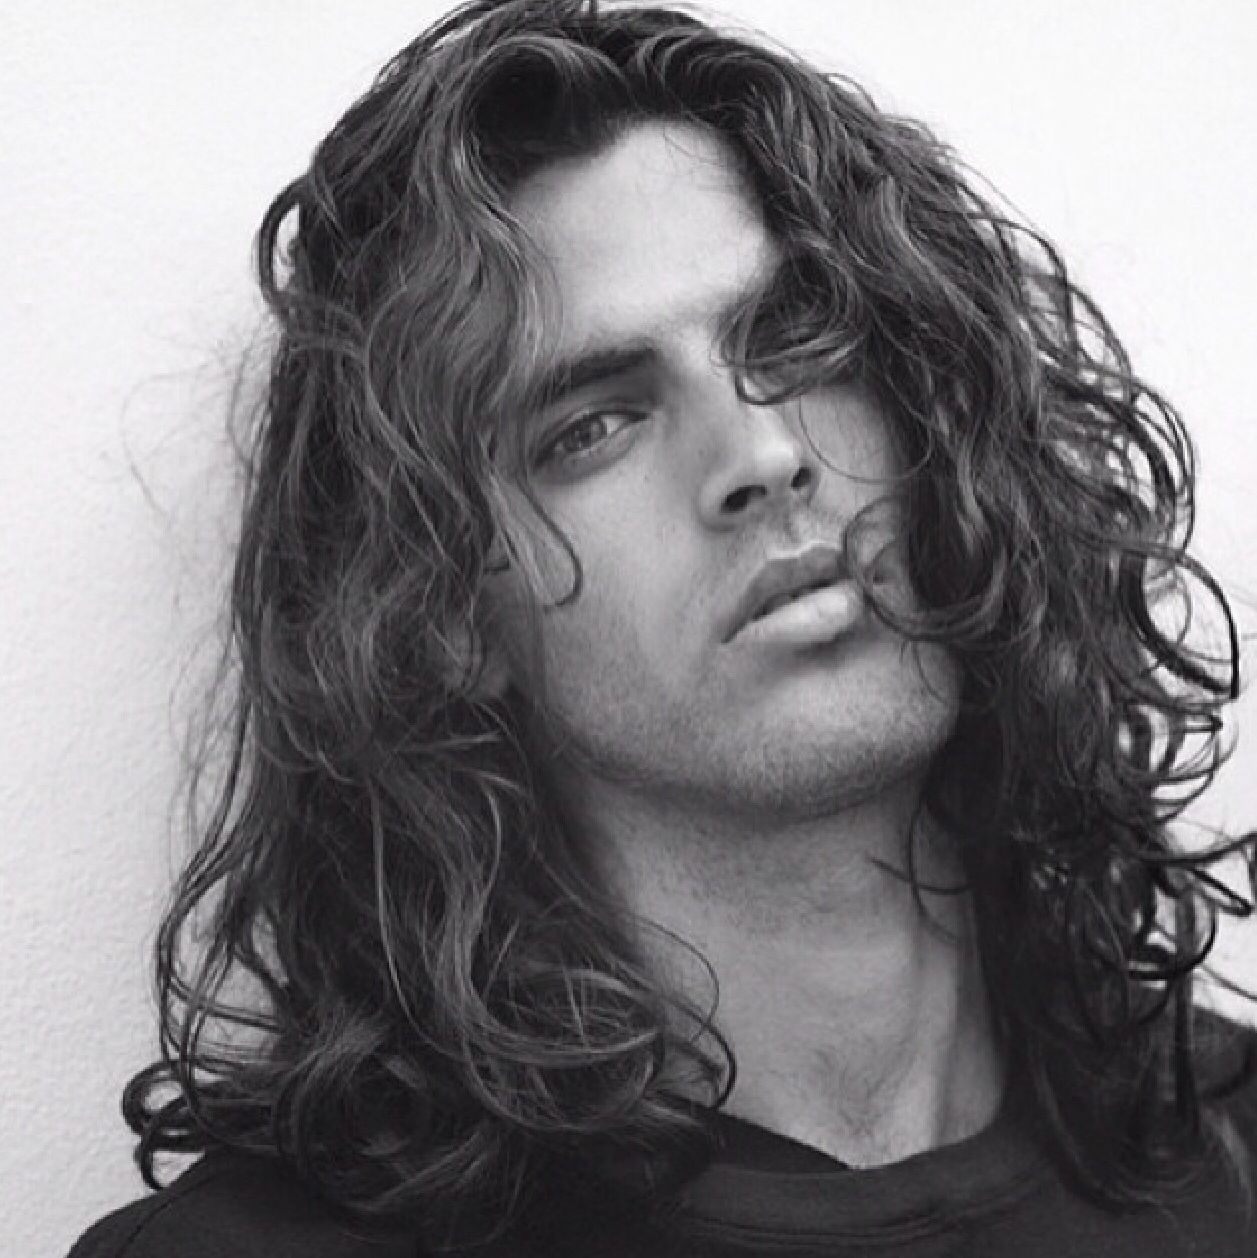 Men\u0027s Hair Extensions are Gaining Popularity. Read all about